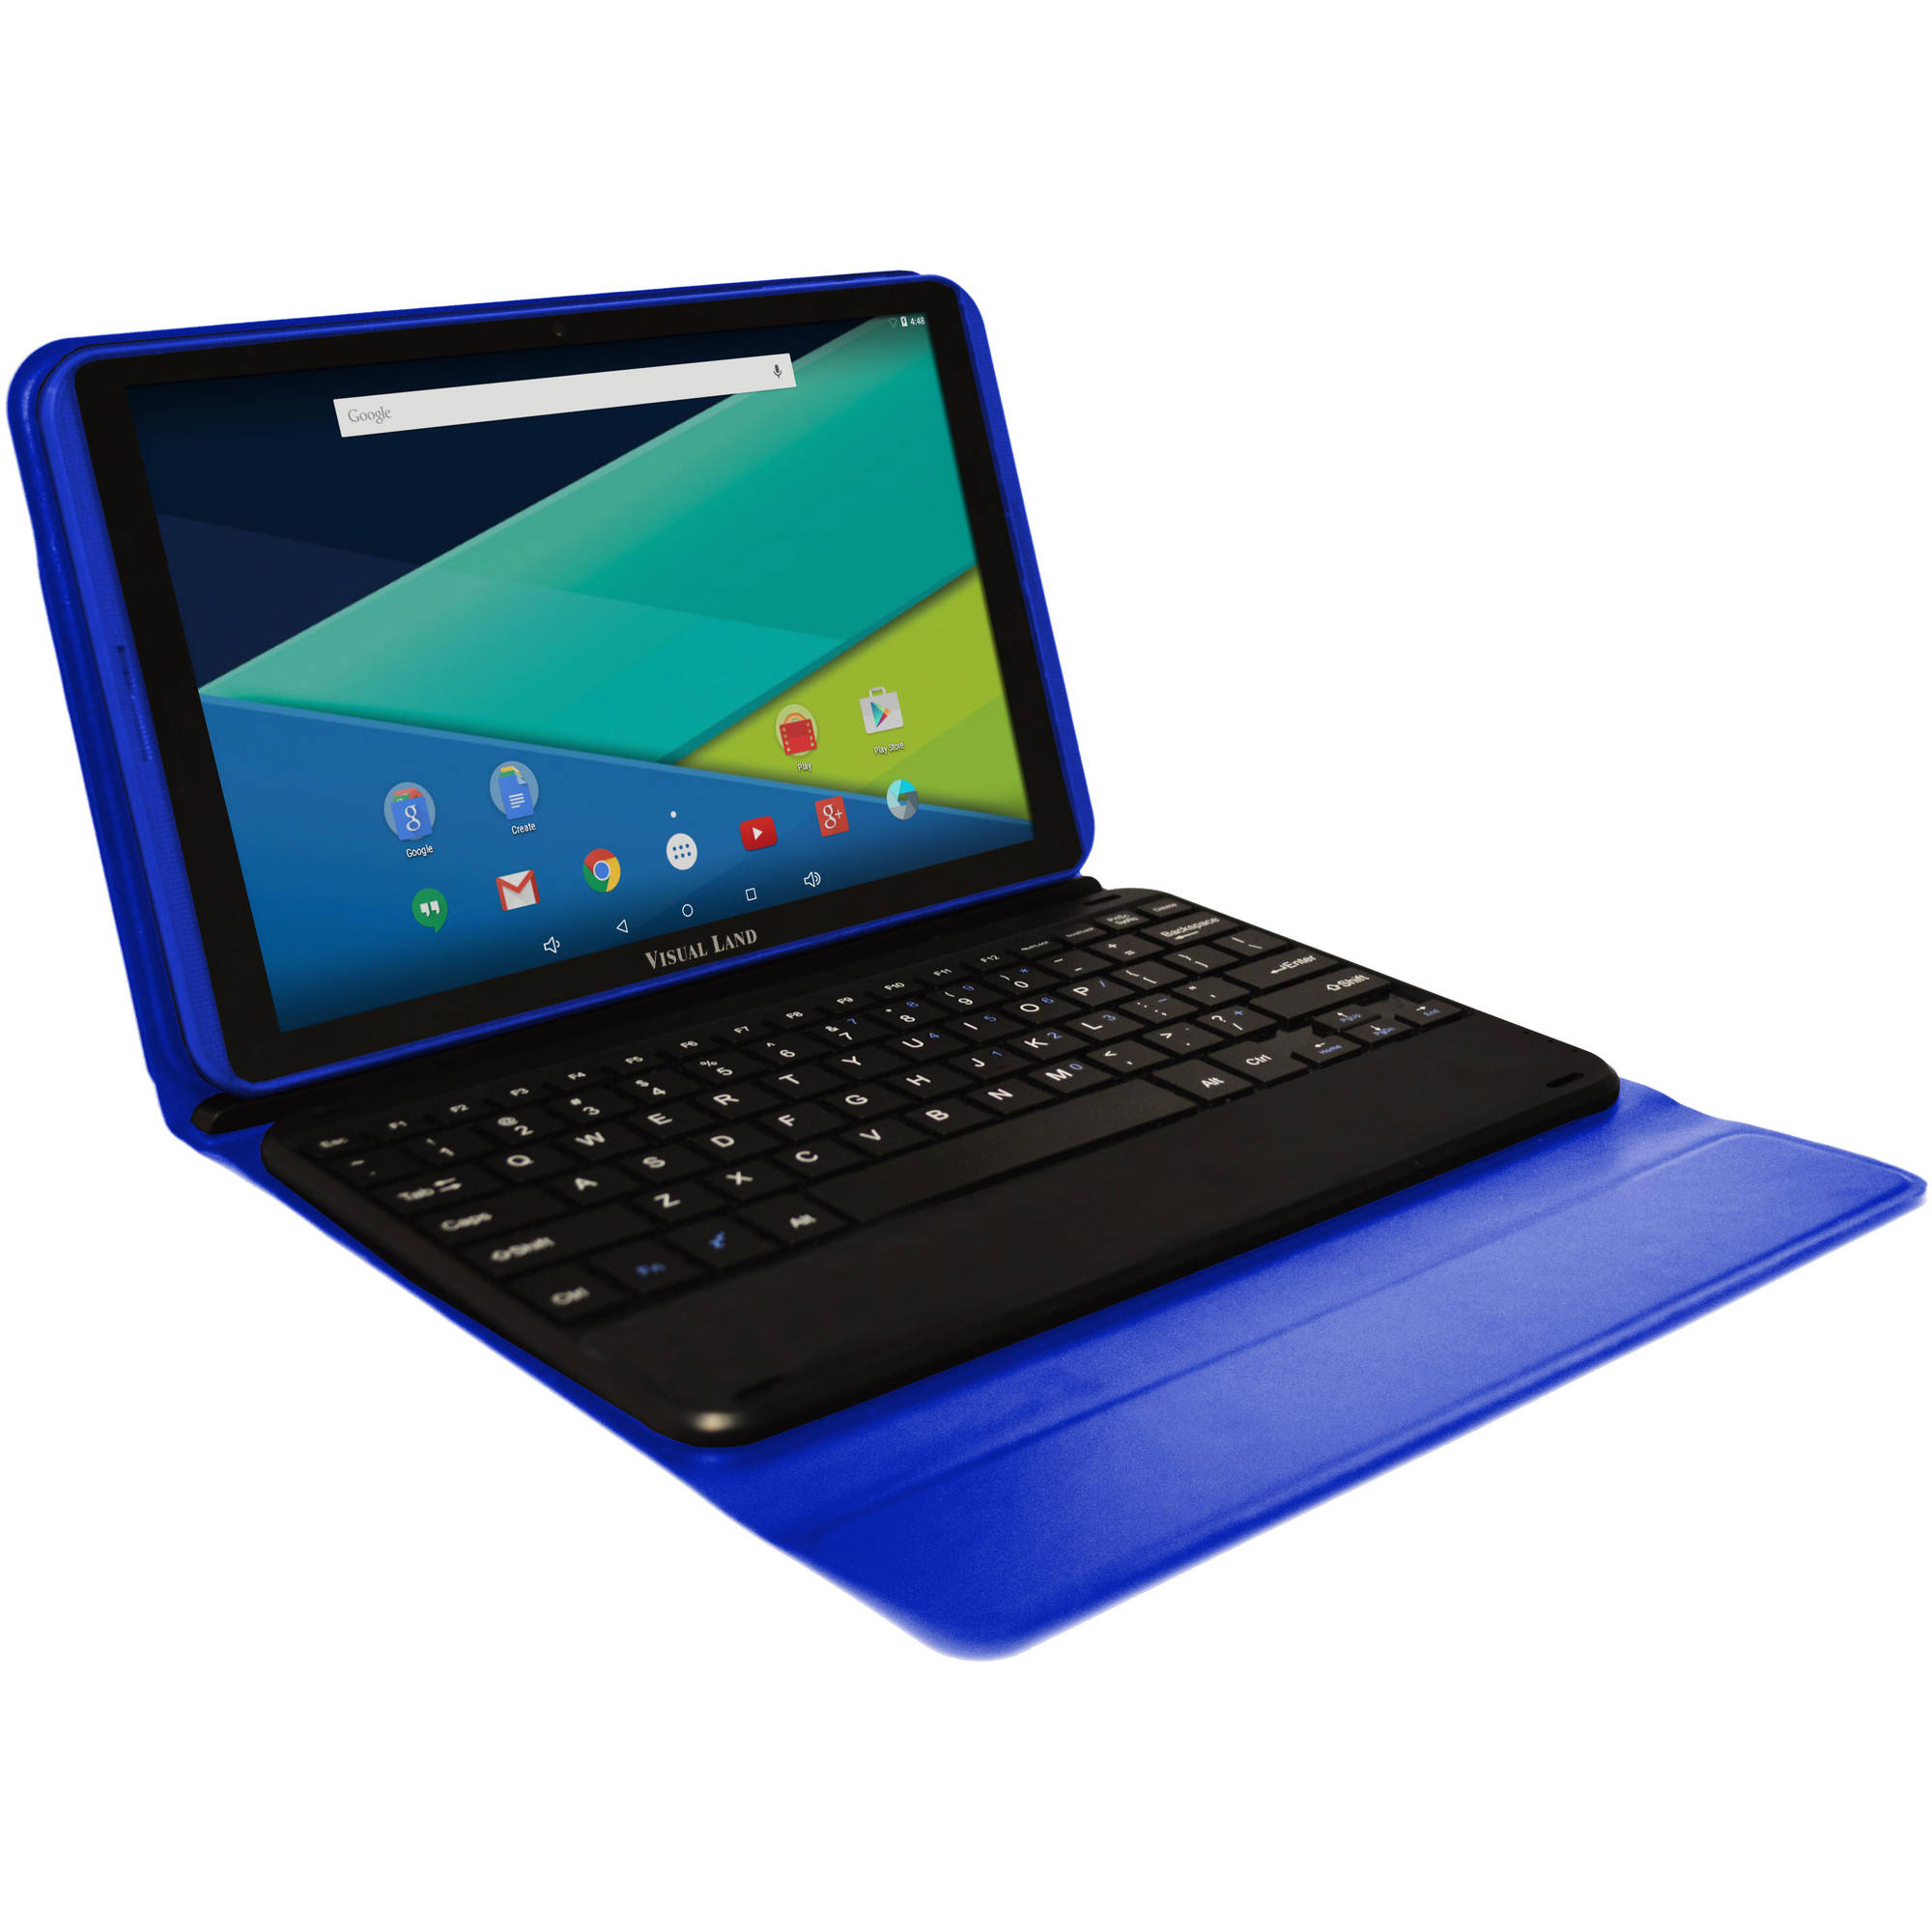 "Visual Land 10.1"" IPS Intel Quad Core 2-in-1 Tablet 16GB includes Docking Keyboard Case - Blue"